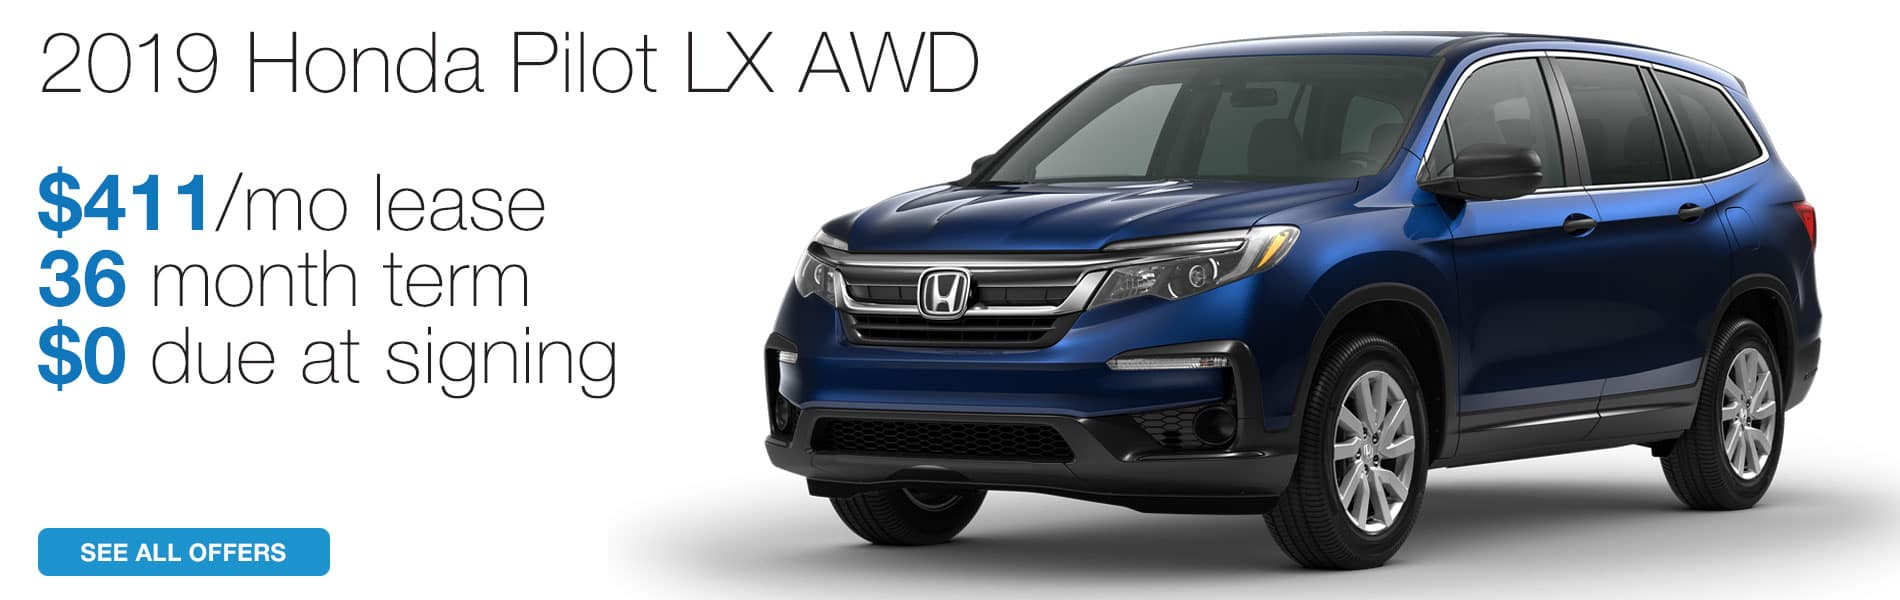 Lease a 2019 Honda Pilot LX AWD for $411 per month lease with $0 due at signing